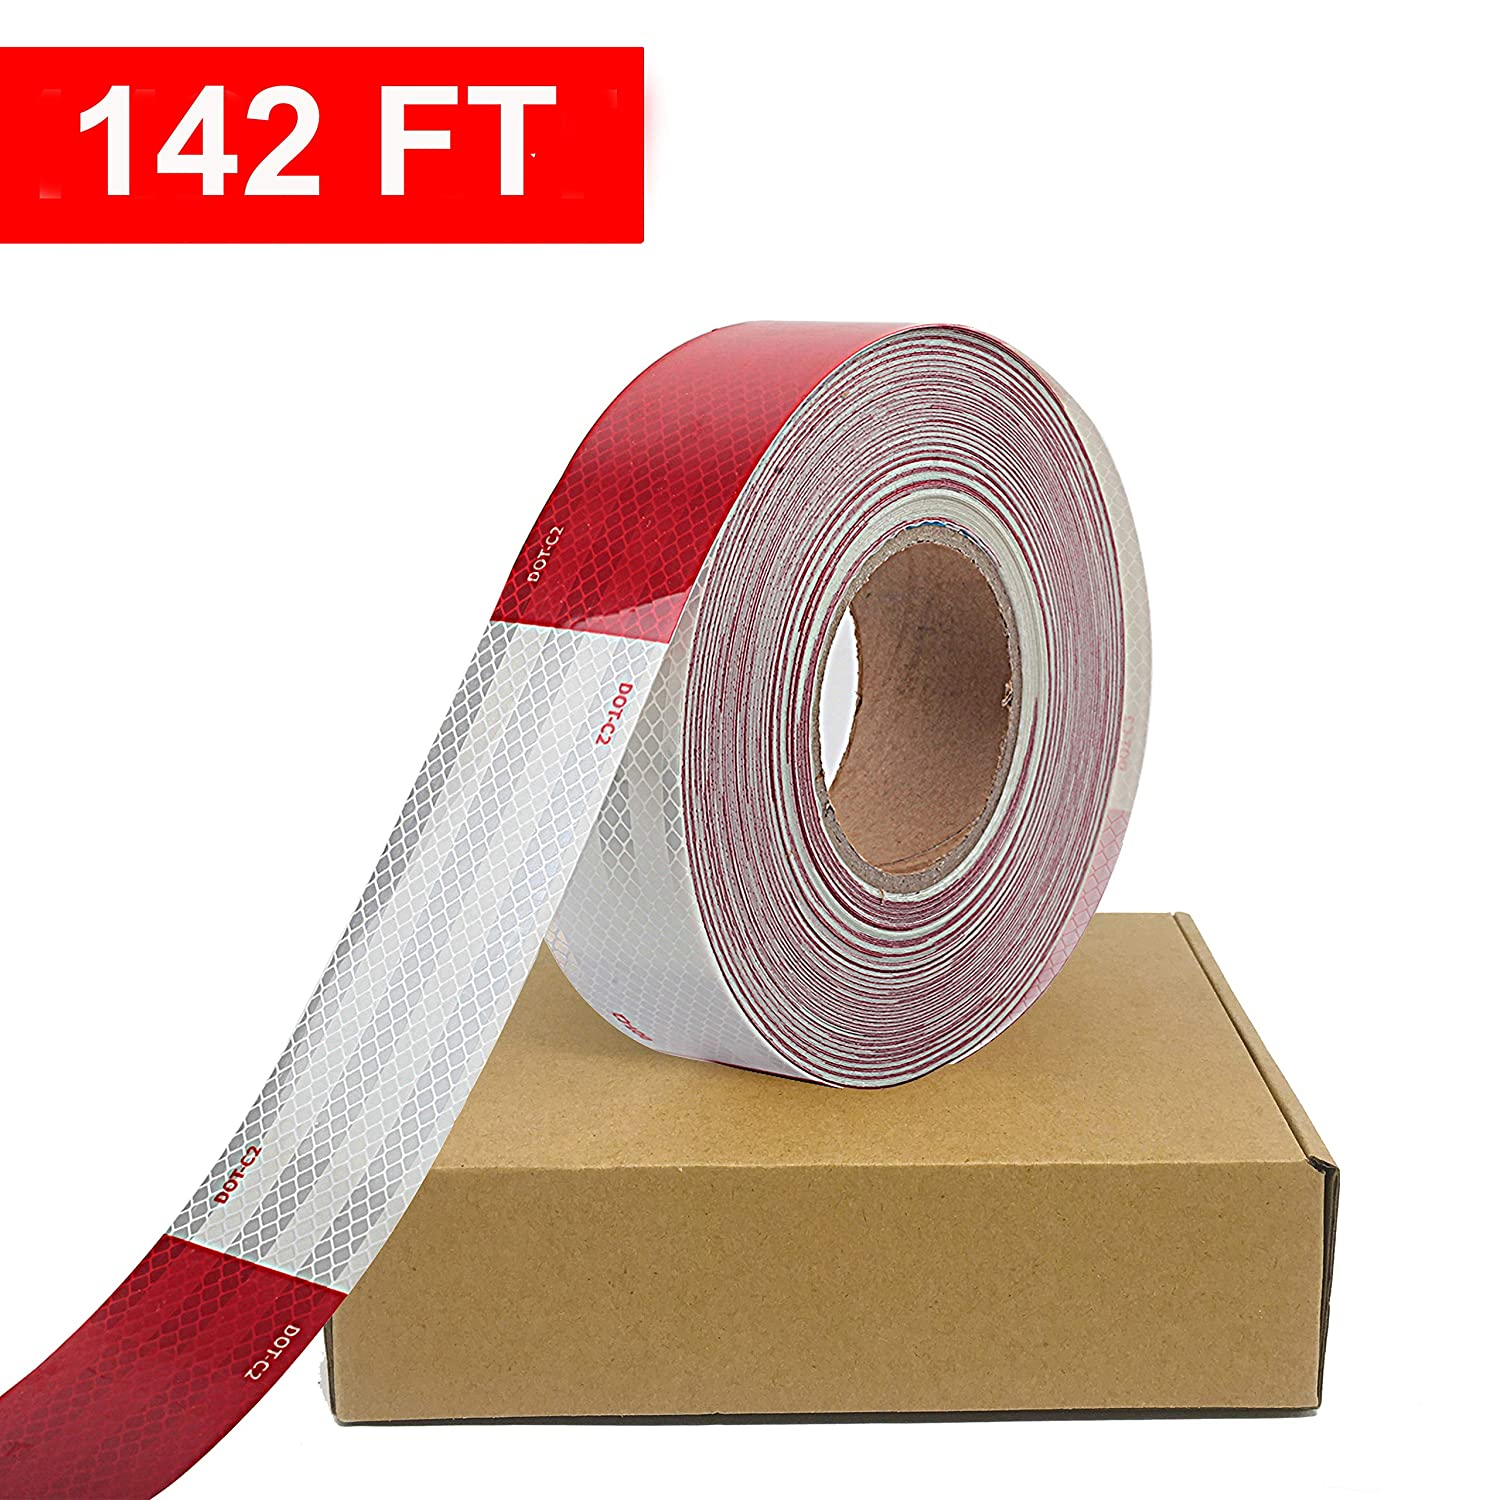 Waterproof Reflective Safety Tape Roll 2X142' Feet Long Red White DOT C2 Auto Truck Safety Reflector Strips Self adhesive Conspicuity Safety Hazard Caution Warning Sticker for Vehicle Car Trailer